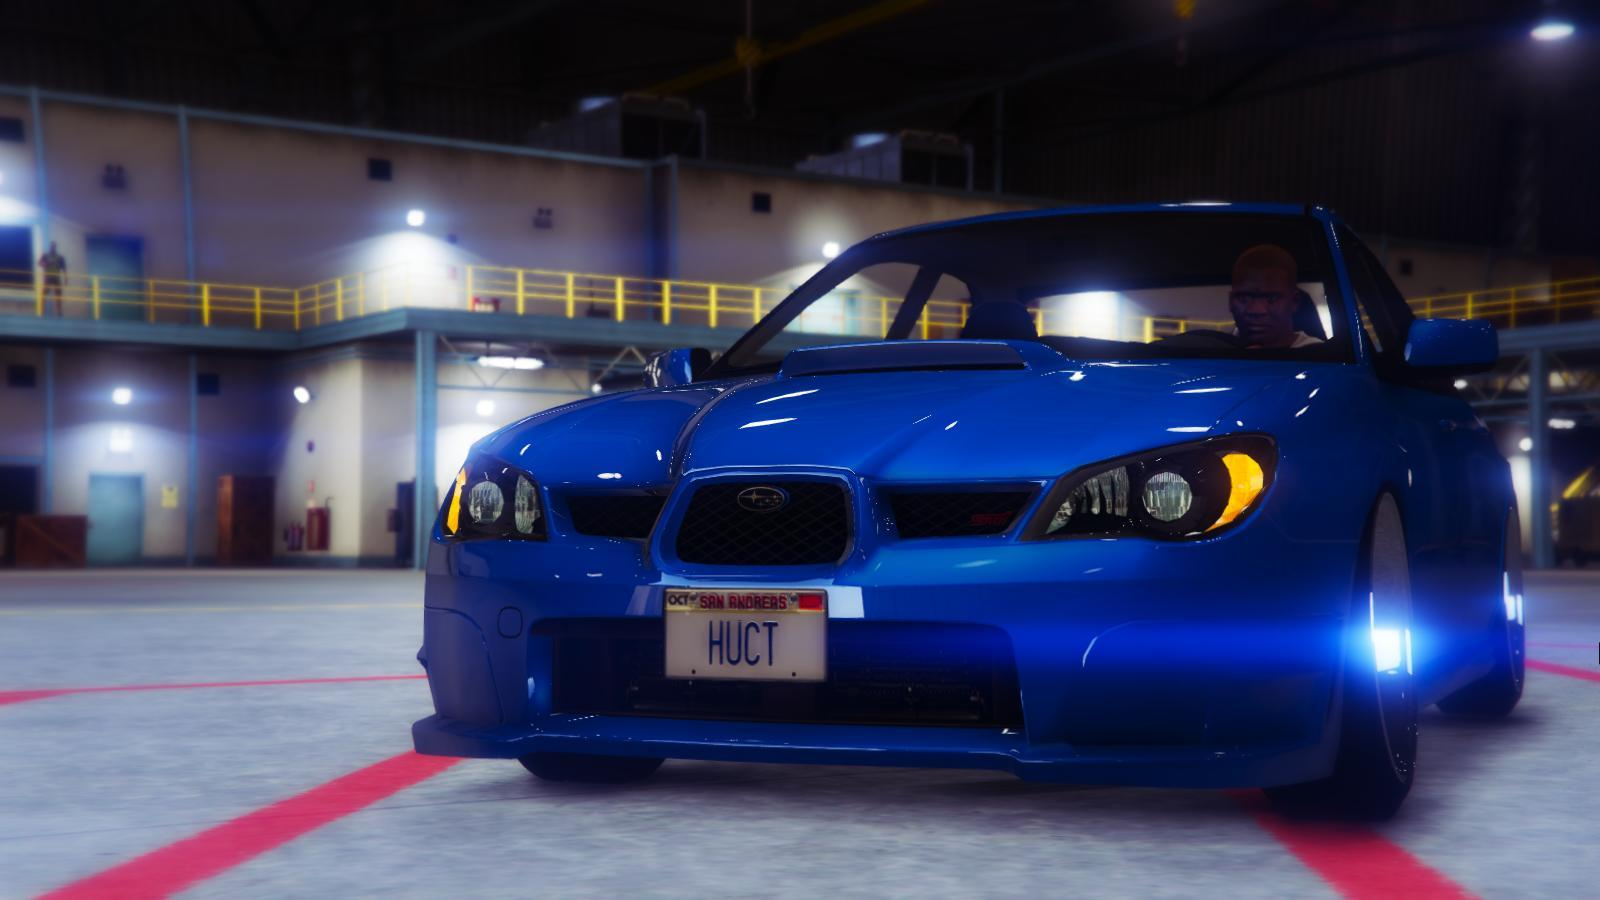 Maxresdefault furthermore Orig furthermore Ati Clust Ej T likewise E Gta together with Hd Sbimp Oe Dry. on 2004 subaru wrx sti